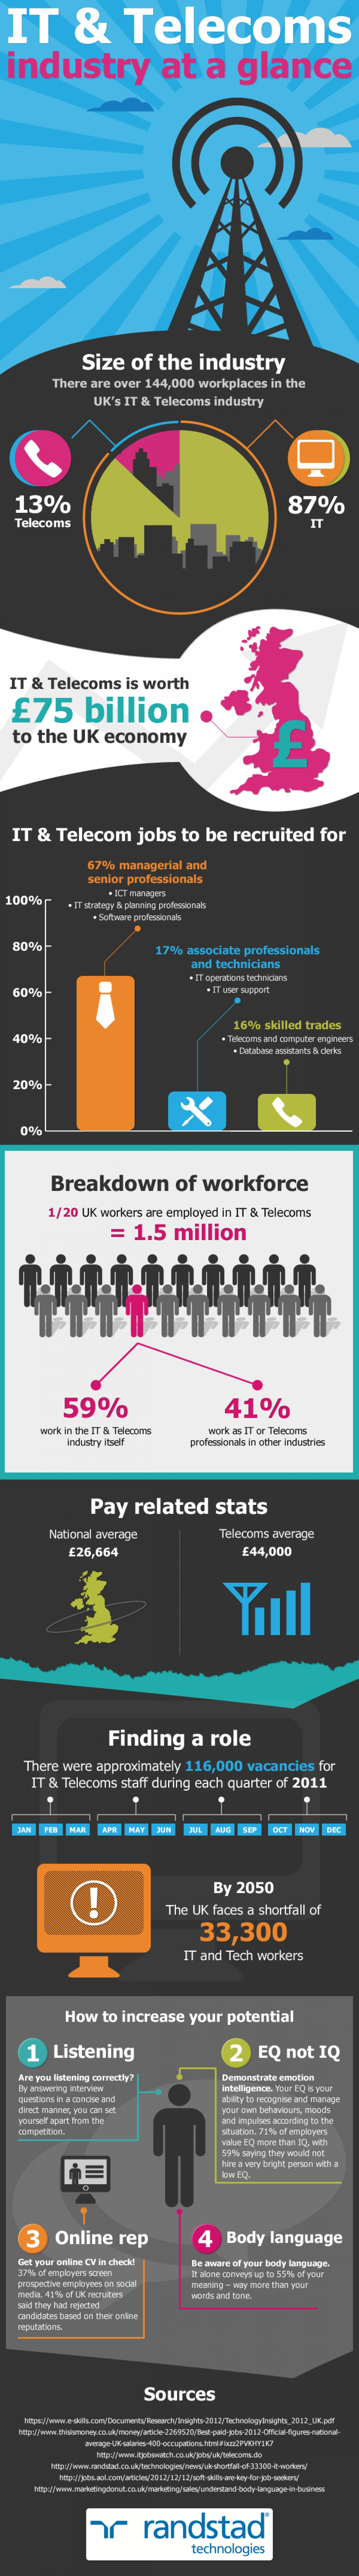 15. IT and Telecoms Job Industry at a Glance